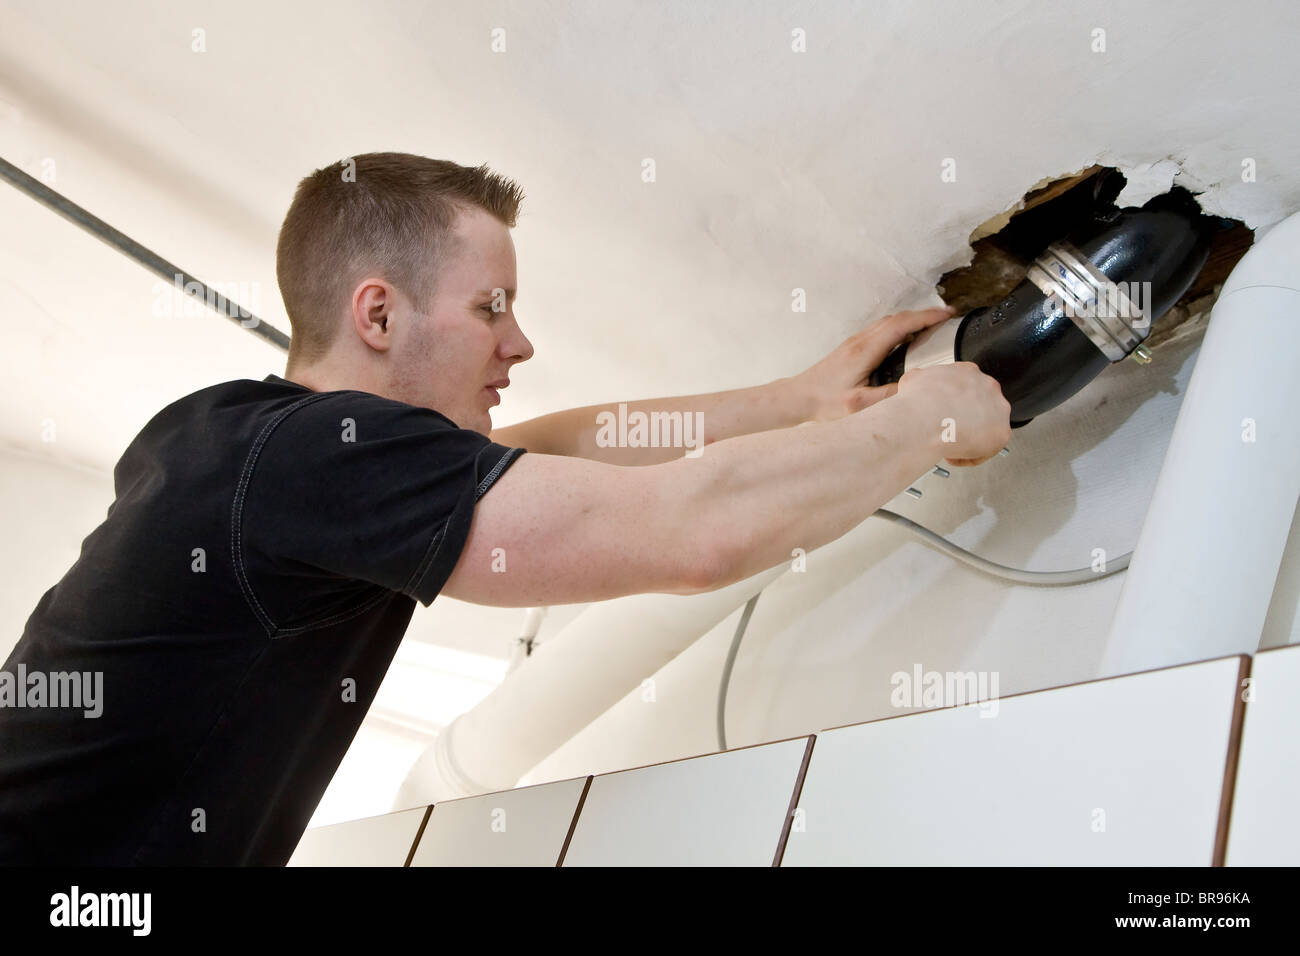 A plumber repairing the leaky drainpipe and water seal - Stock Image